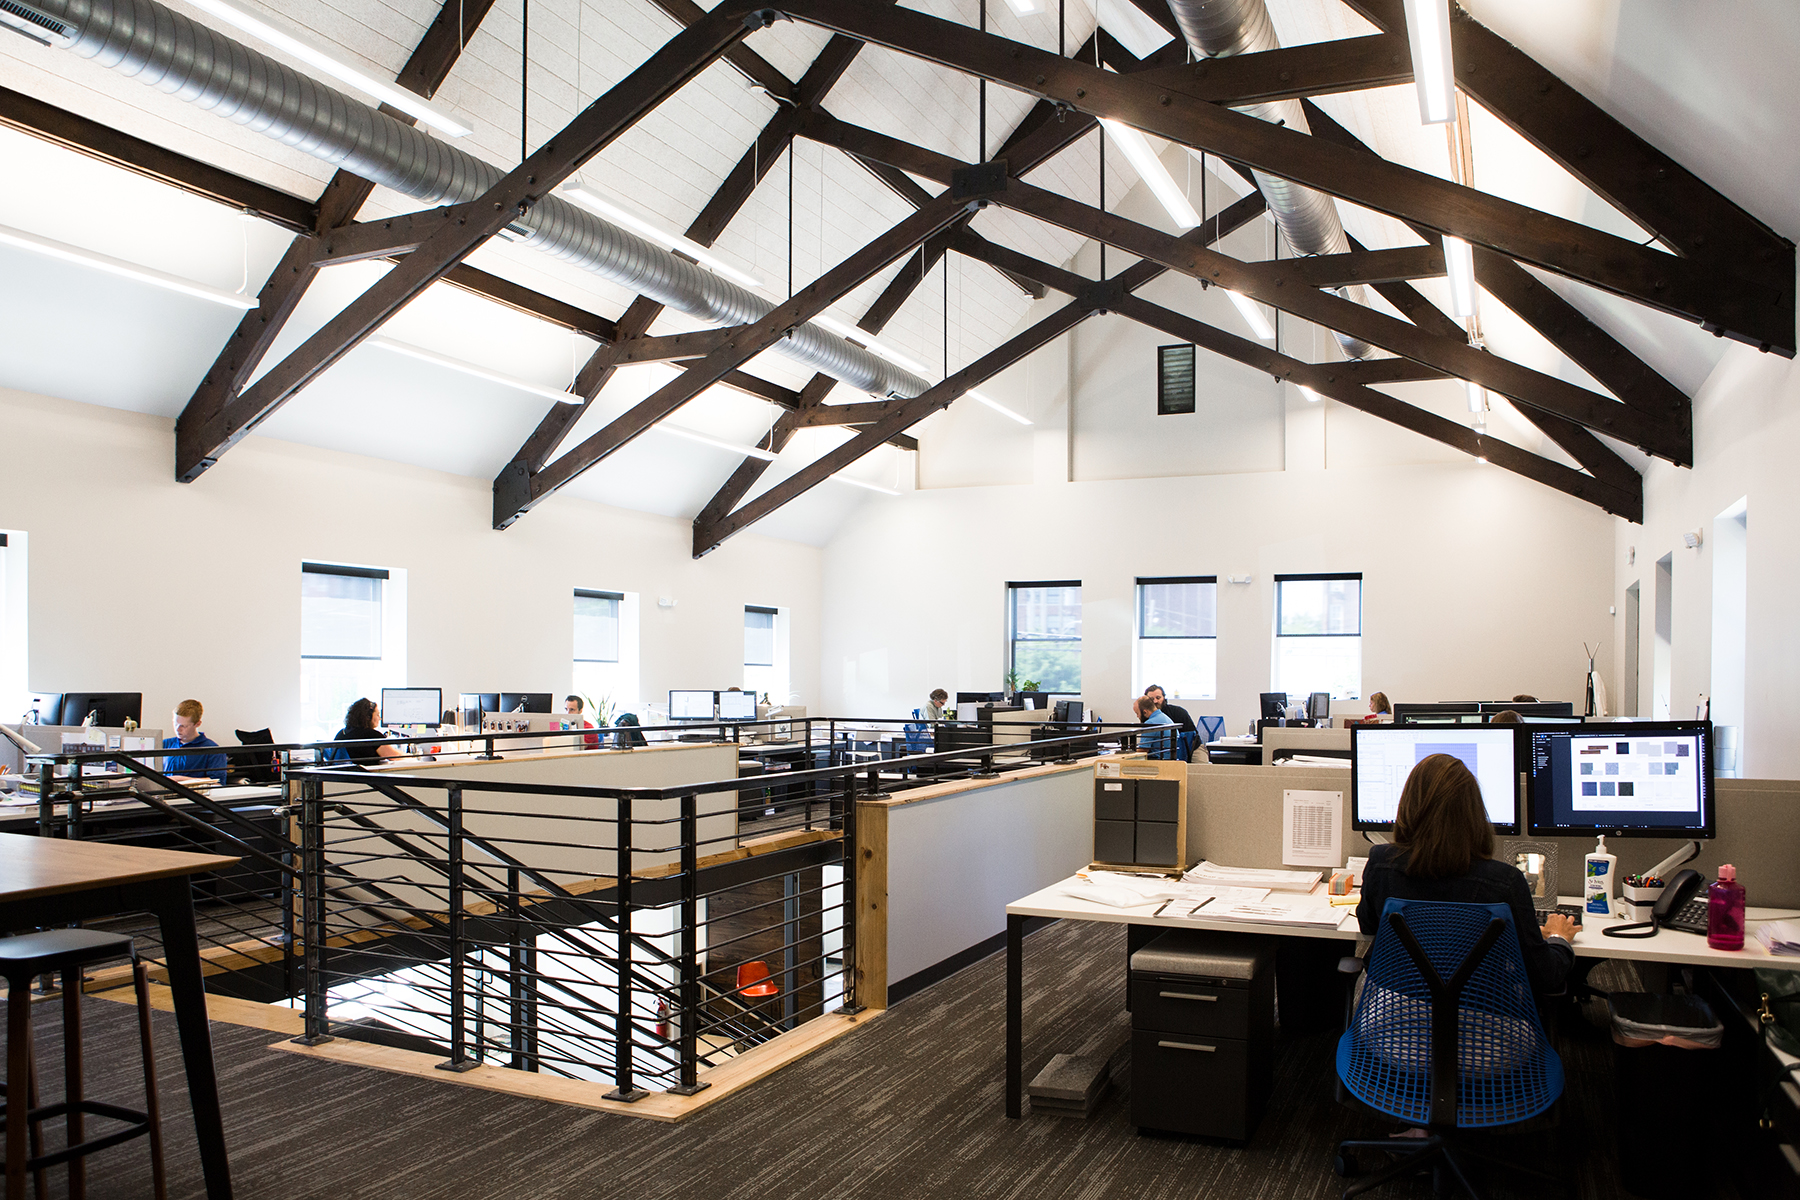 archall office work space with vaulted ceilings, open space and commercial function.